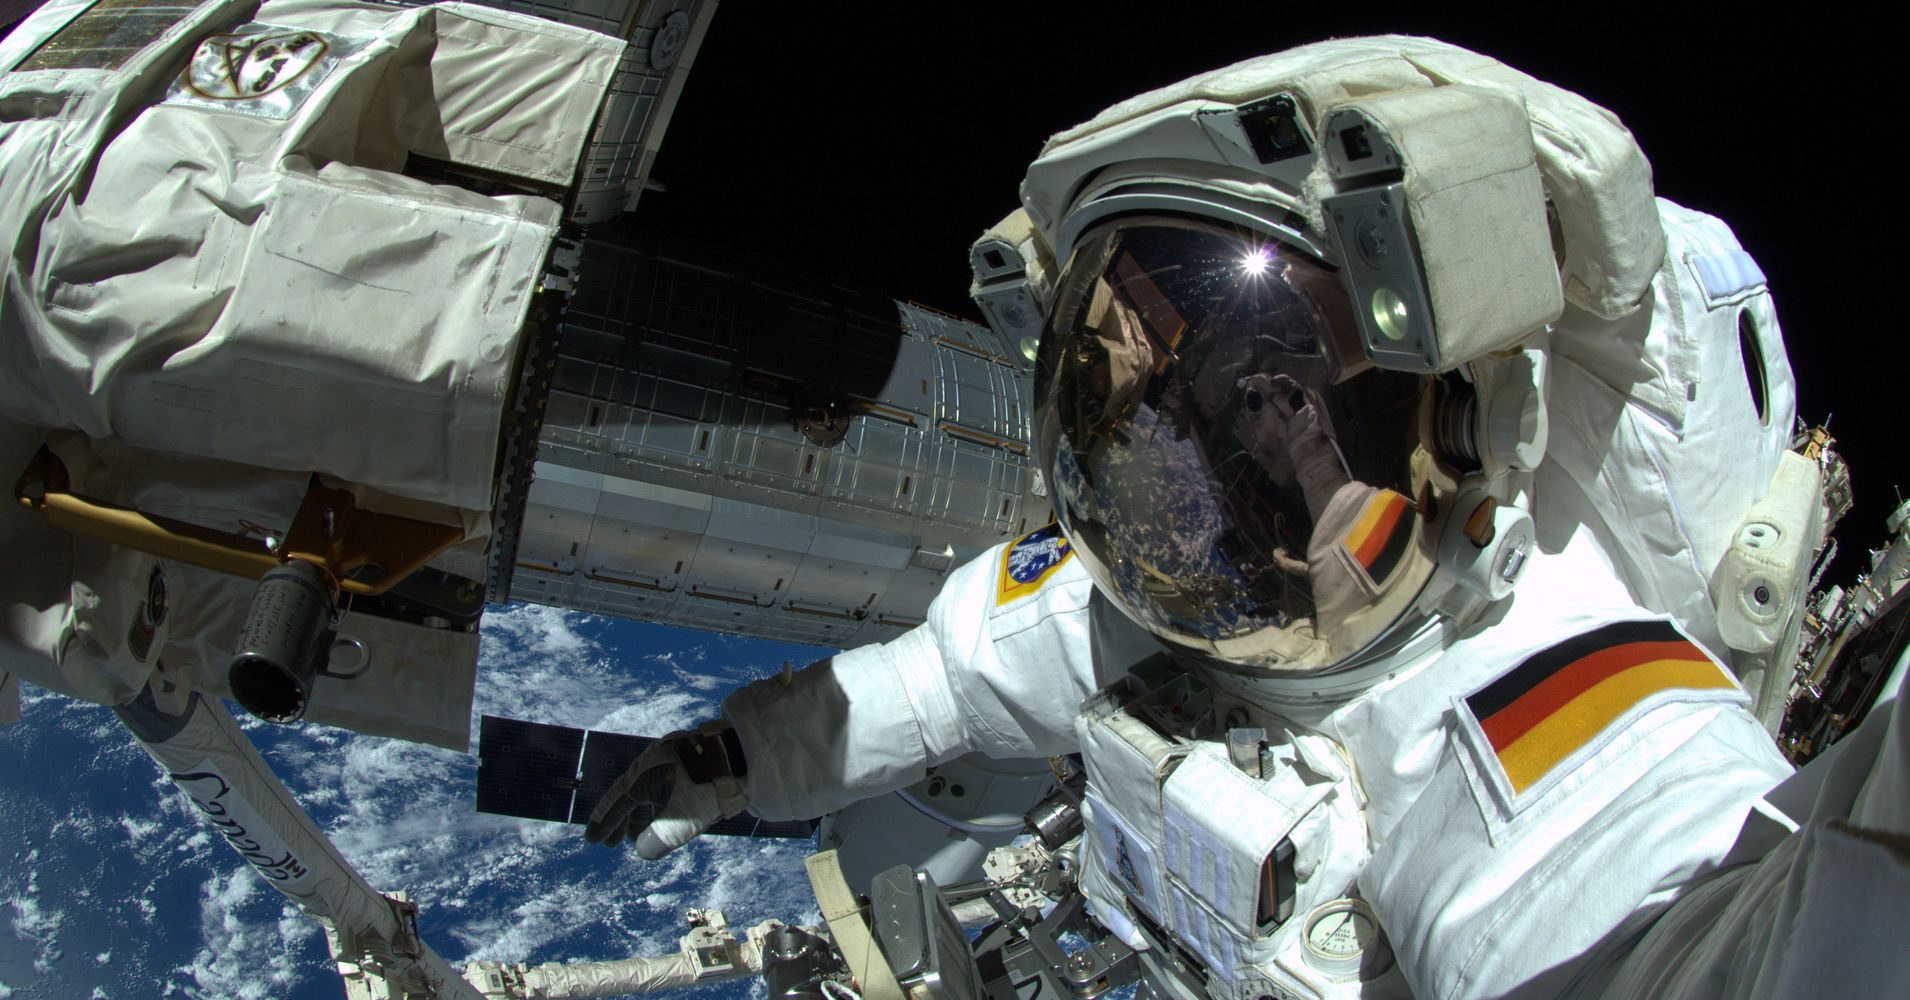 astronaut effects space travelling - photo #8